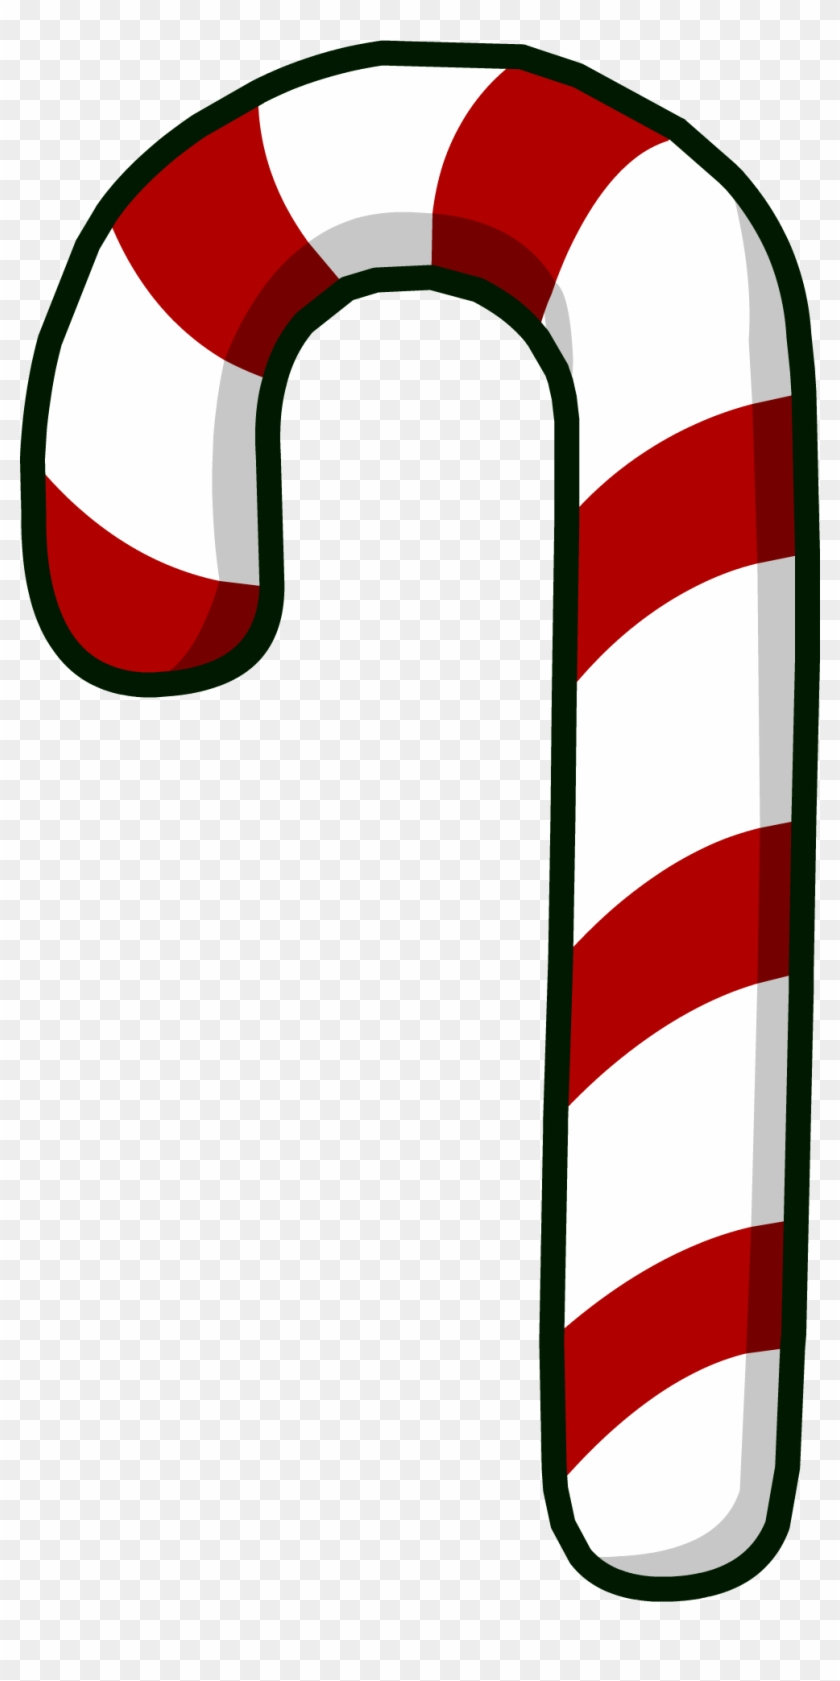 Cartoon Candy Cane Png